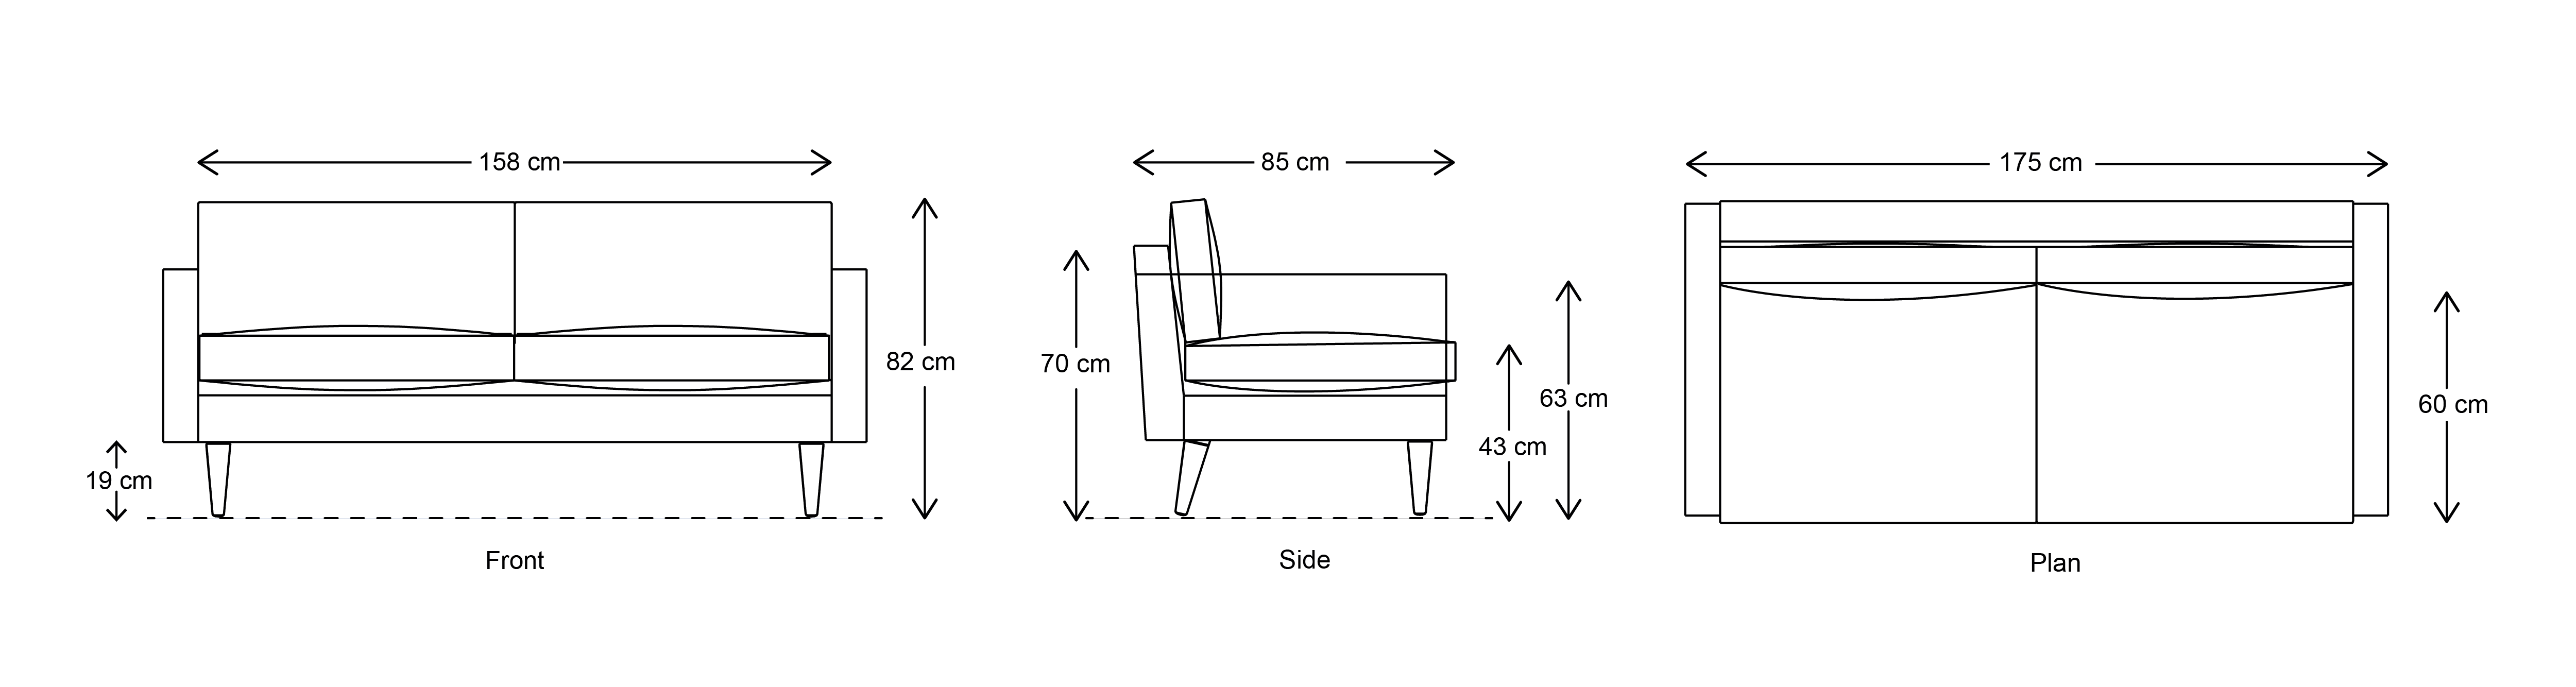 Model 01 2 Seater Dimensions Drawing